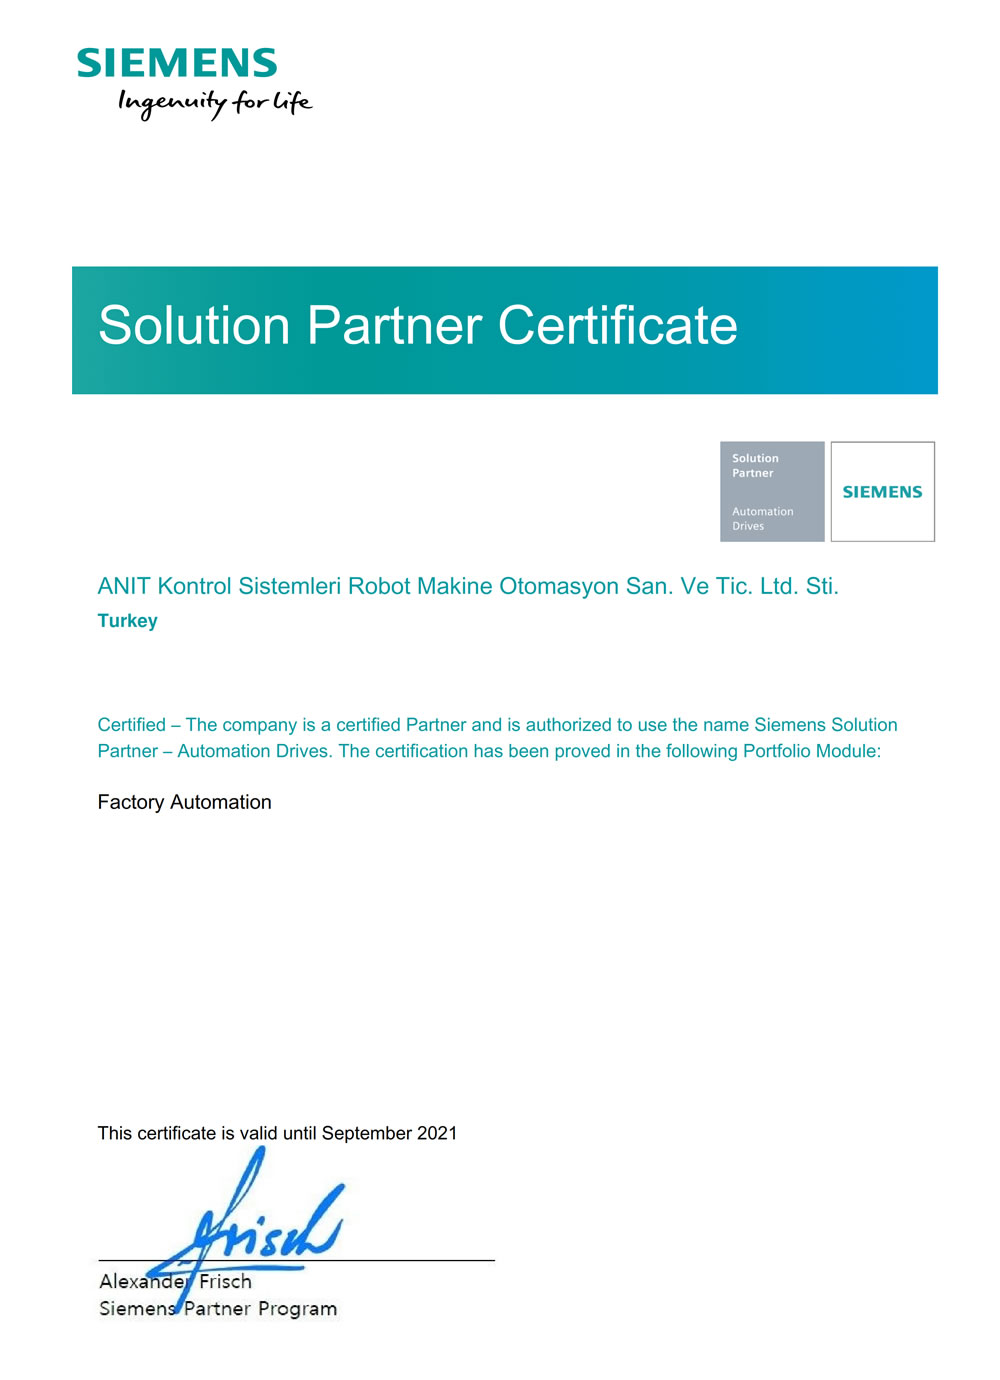 SIEMENS Partner - Factory Automation